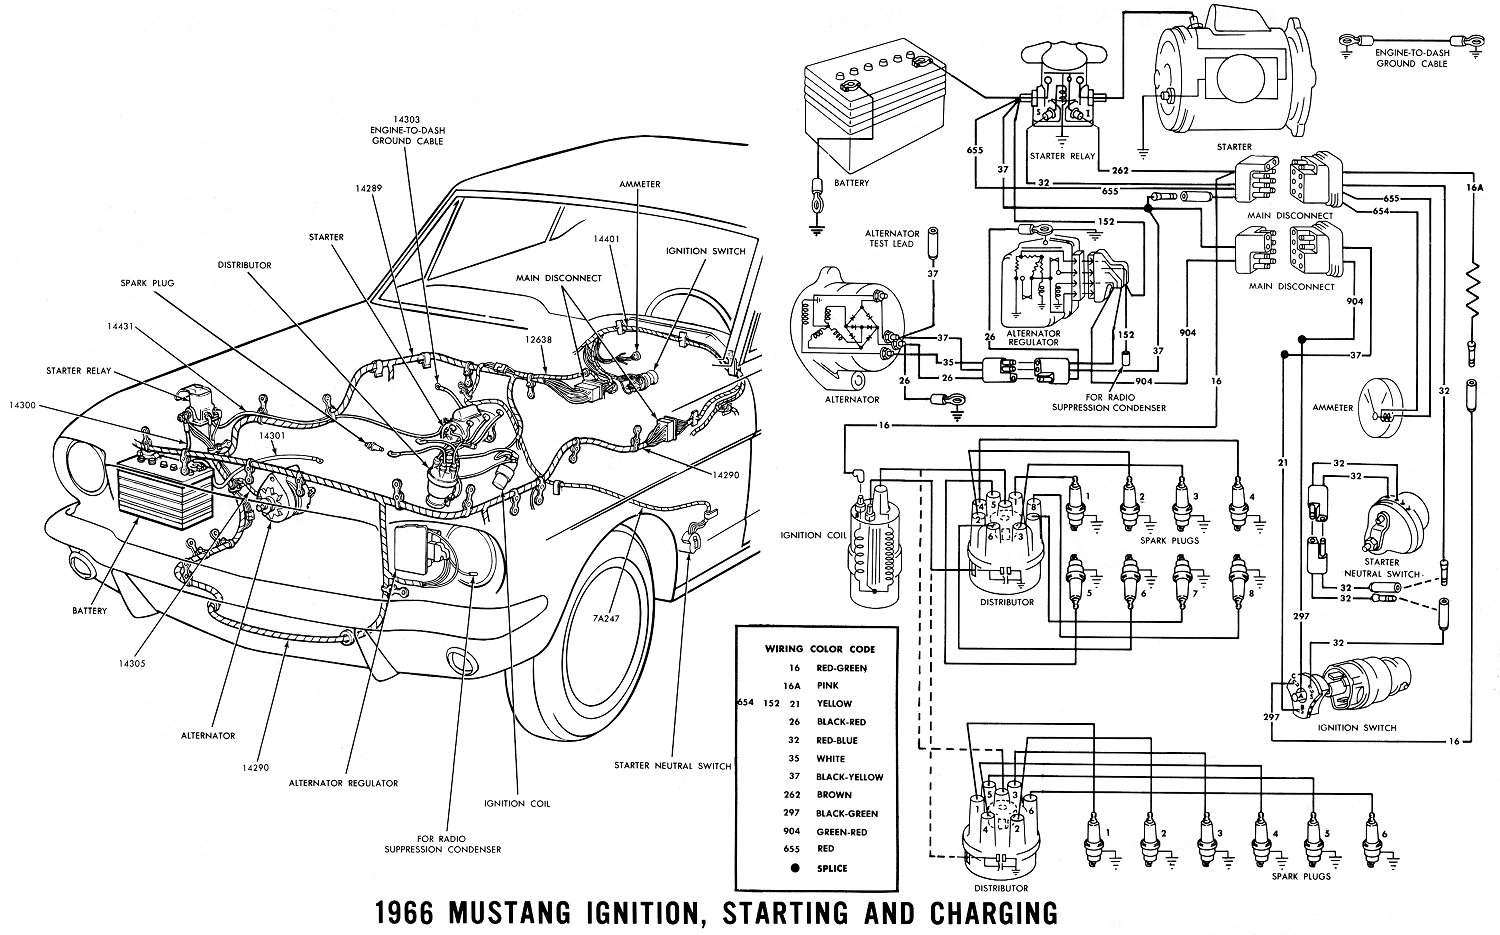 66ignit 1966 mustang wiring diagrams average joe restoration 1968 mustang ignition switch wiring diagram at gsmx.co